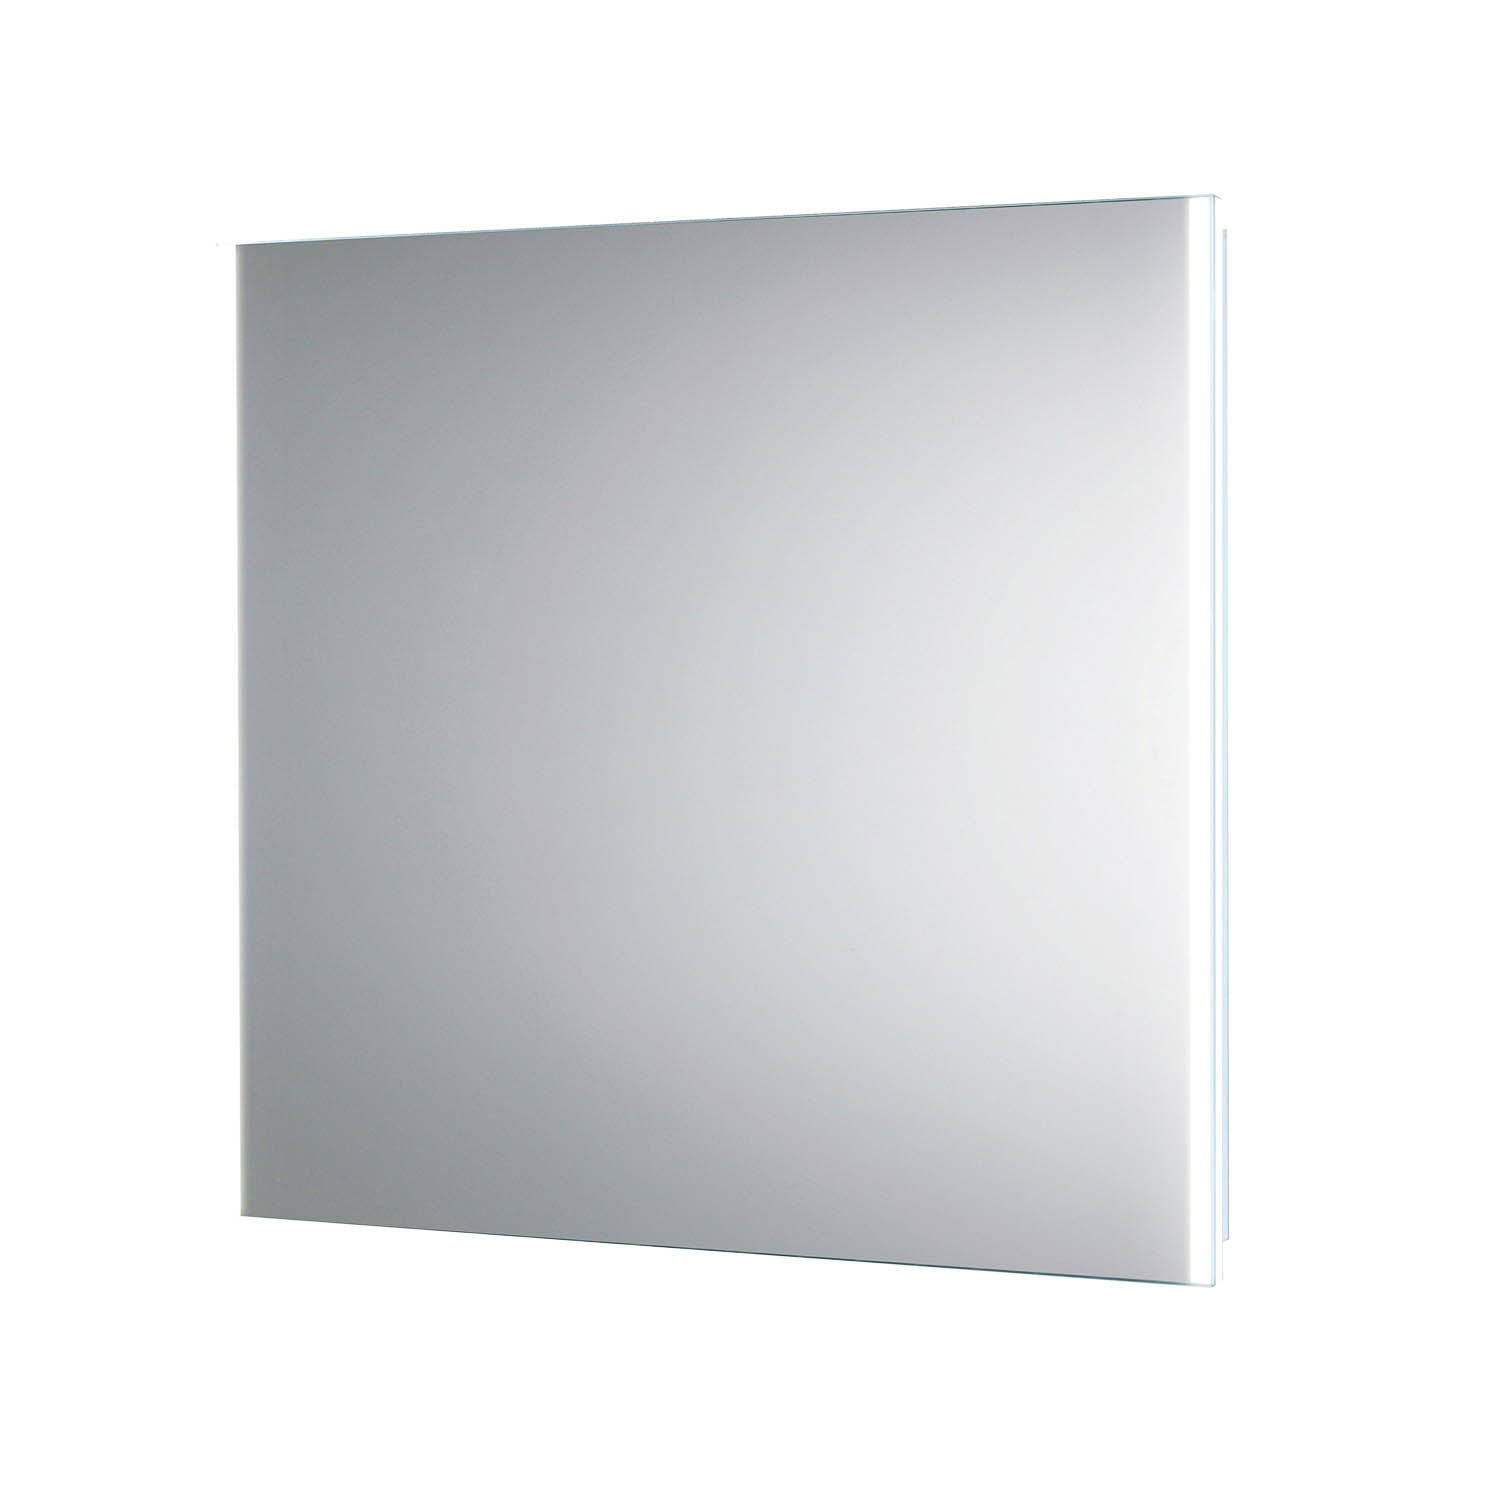 800x600mm Side Lit LED Light Mirror on a white background